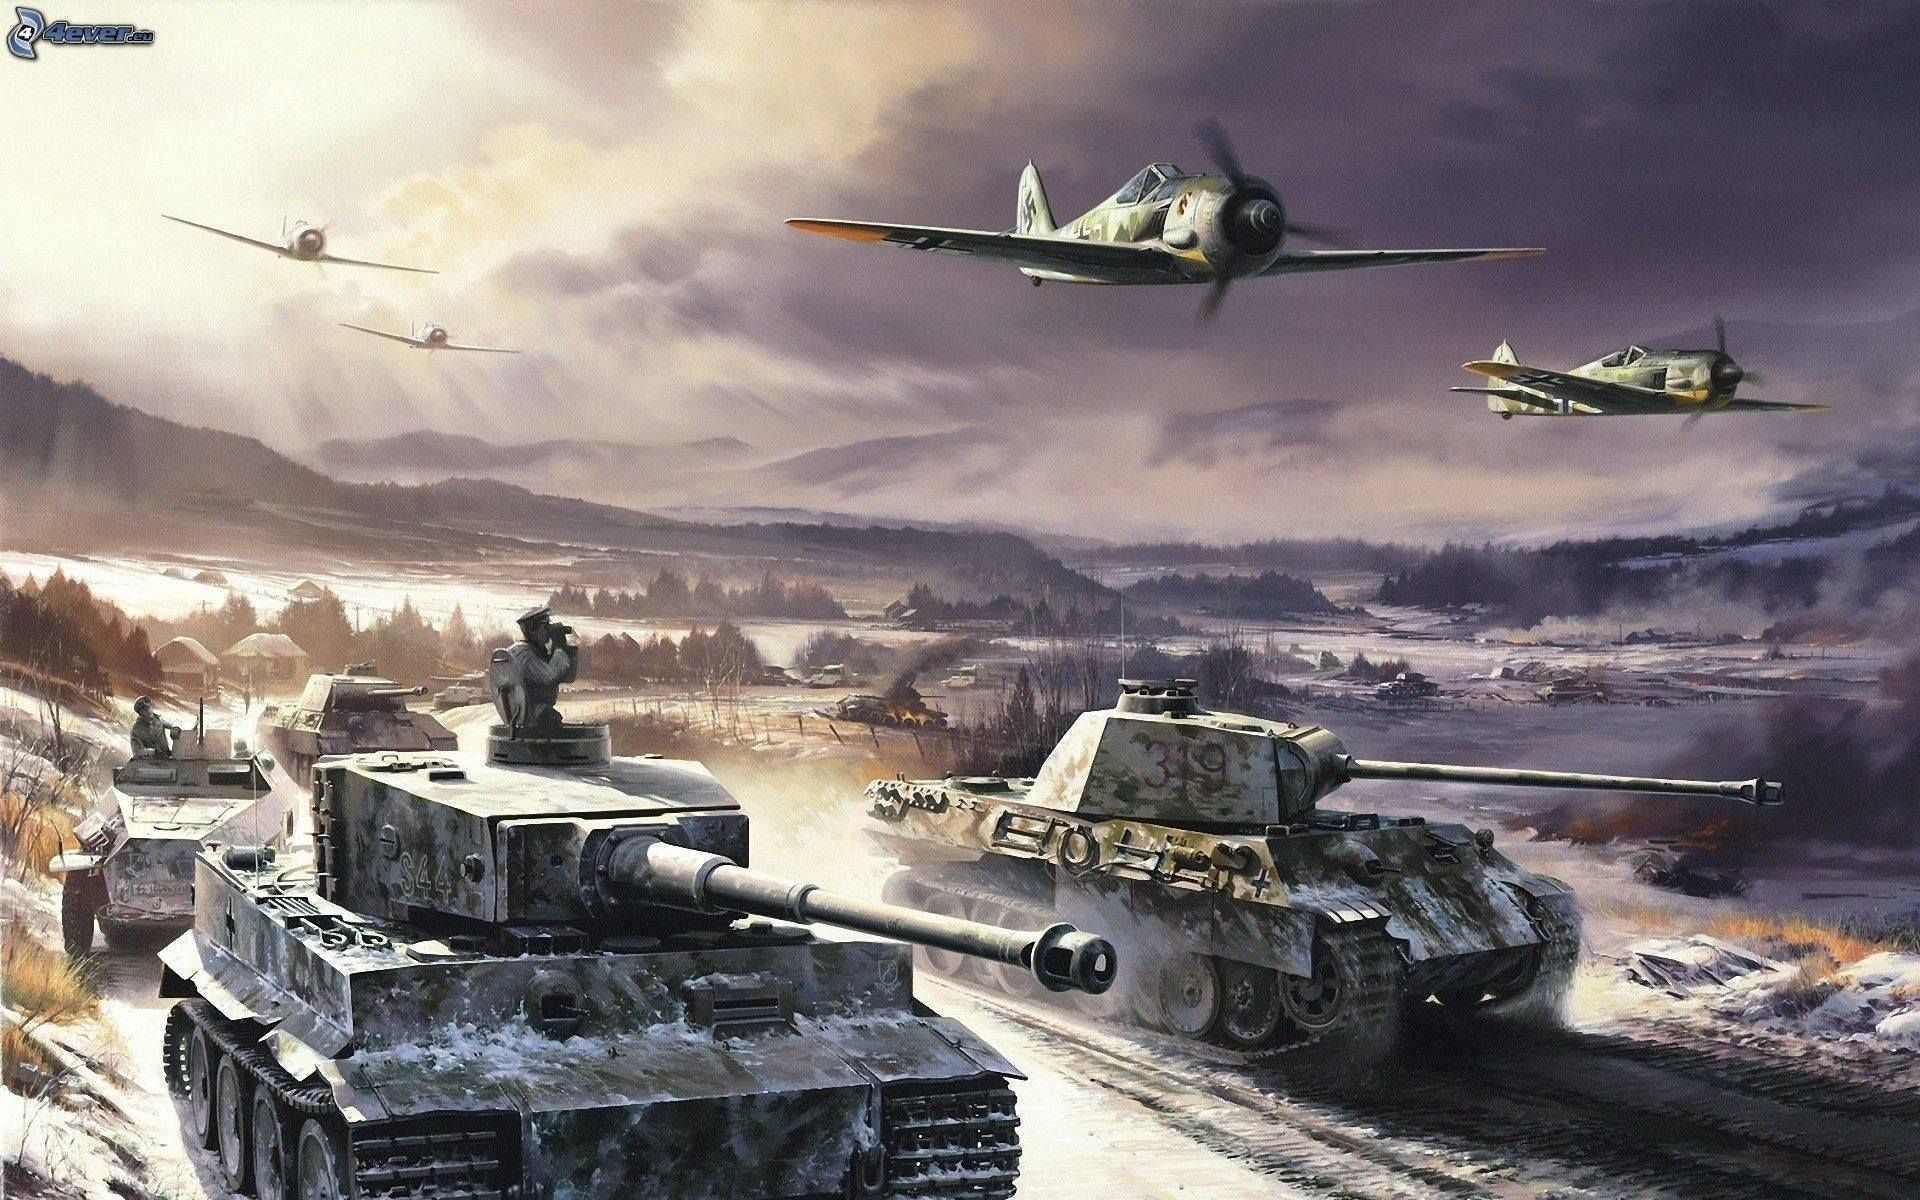 How to Decorate Your Walls With Tank wallpaper Picture designs